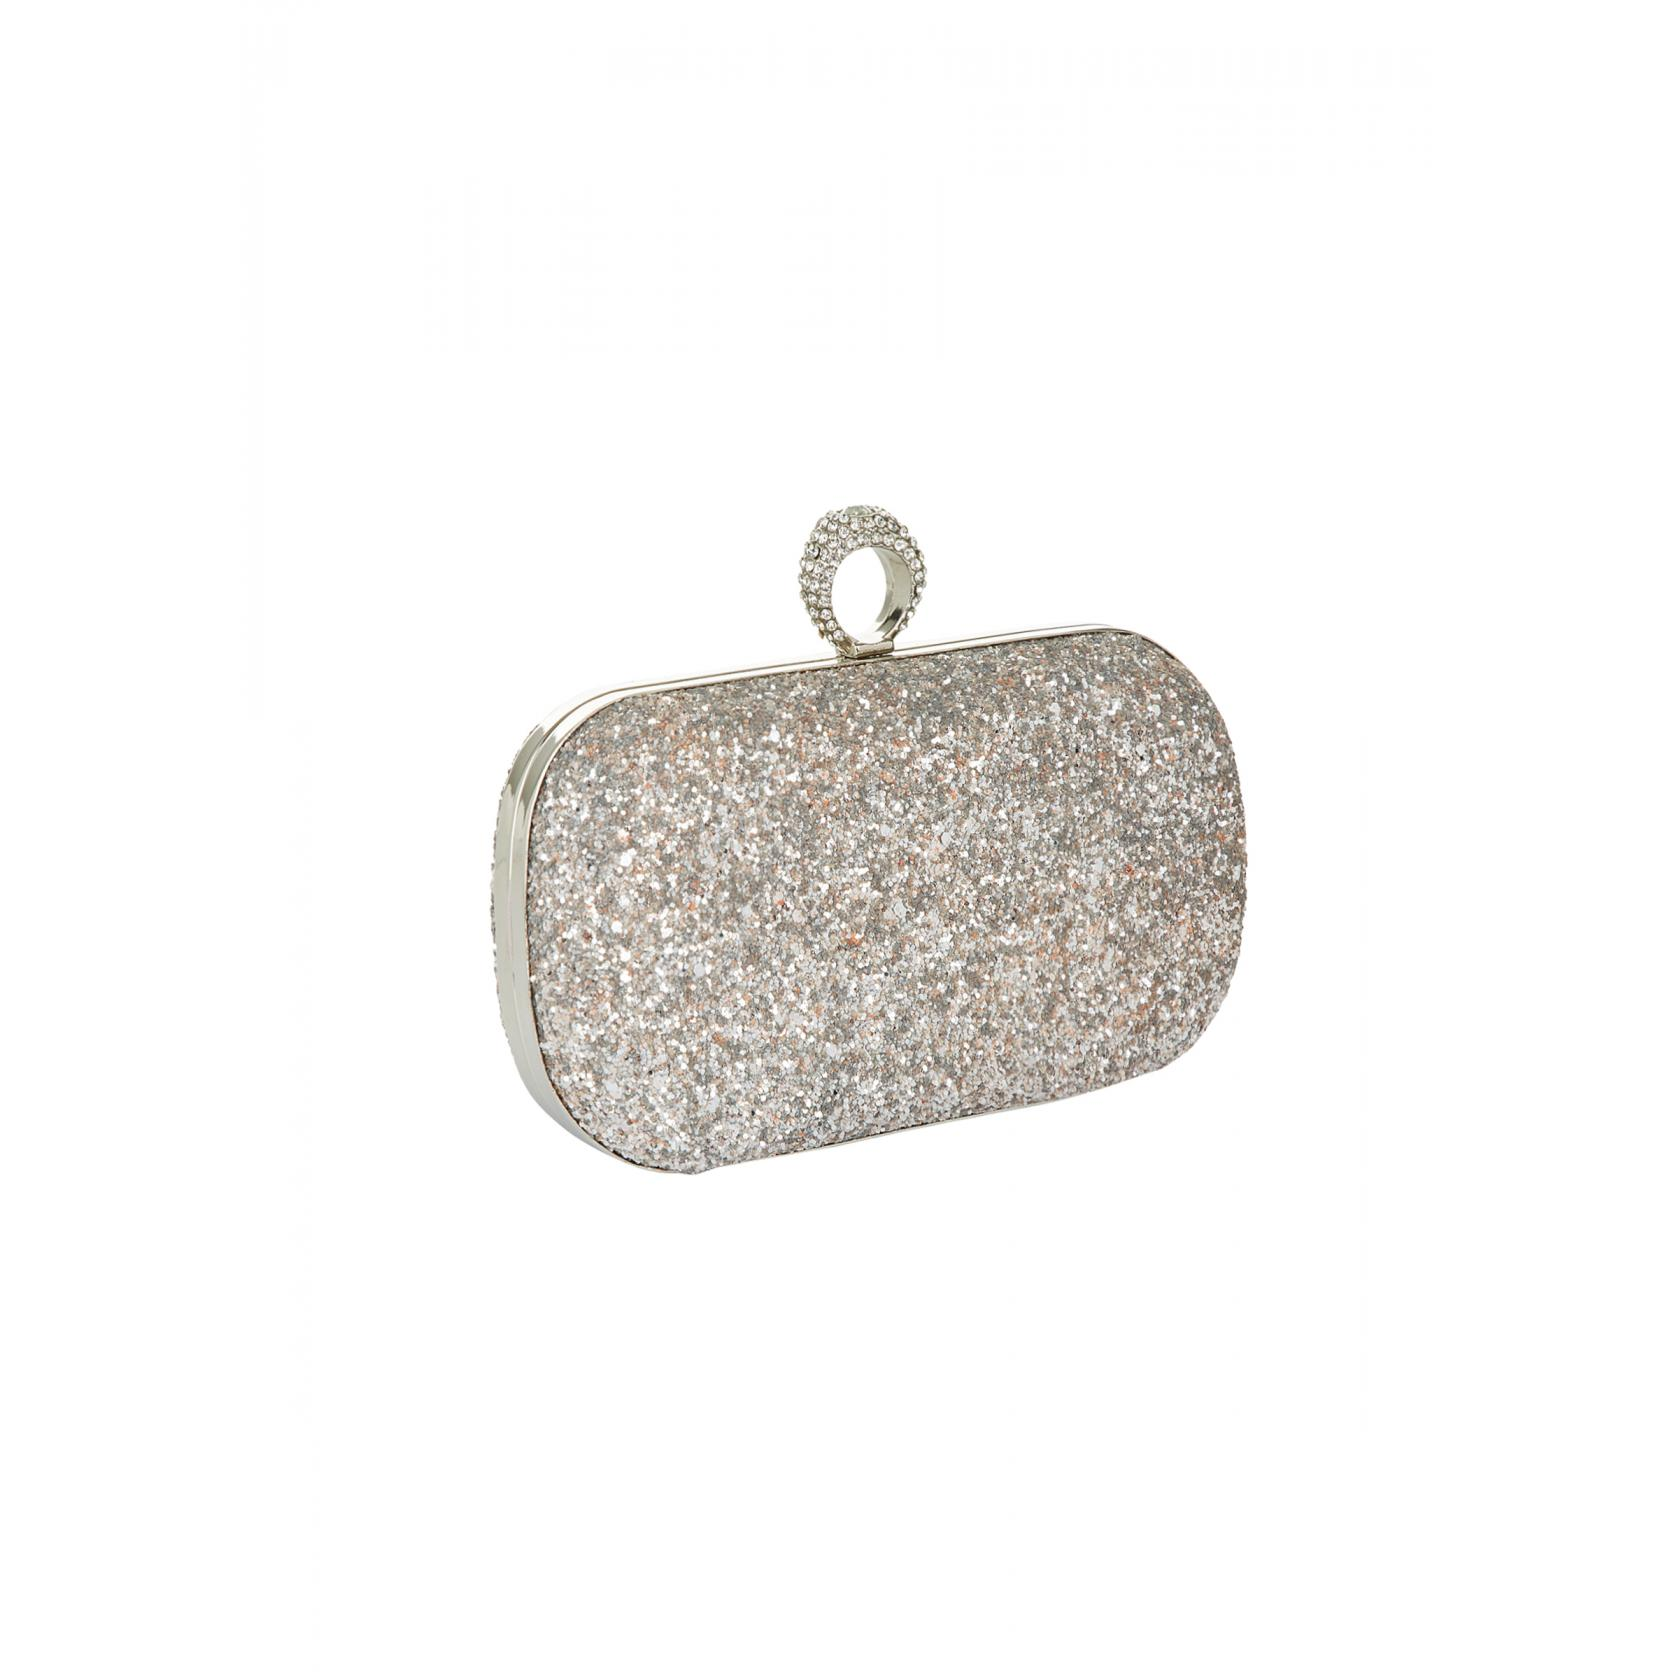 Mascara Silver Clutch Bag